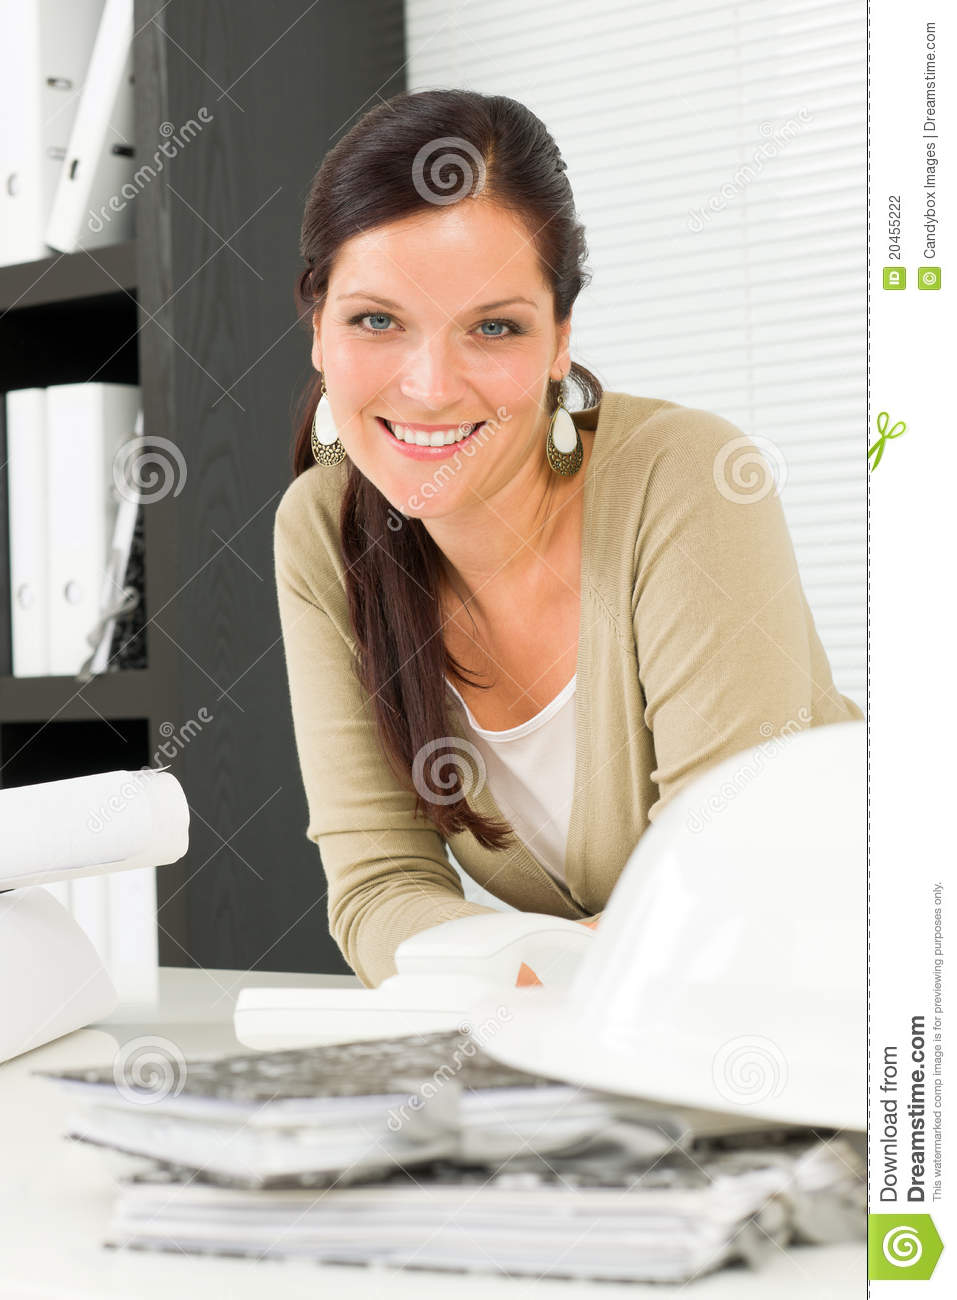 Relax professional architect woman smiling stock photo for Professional architect